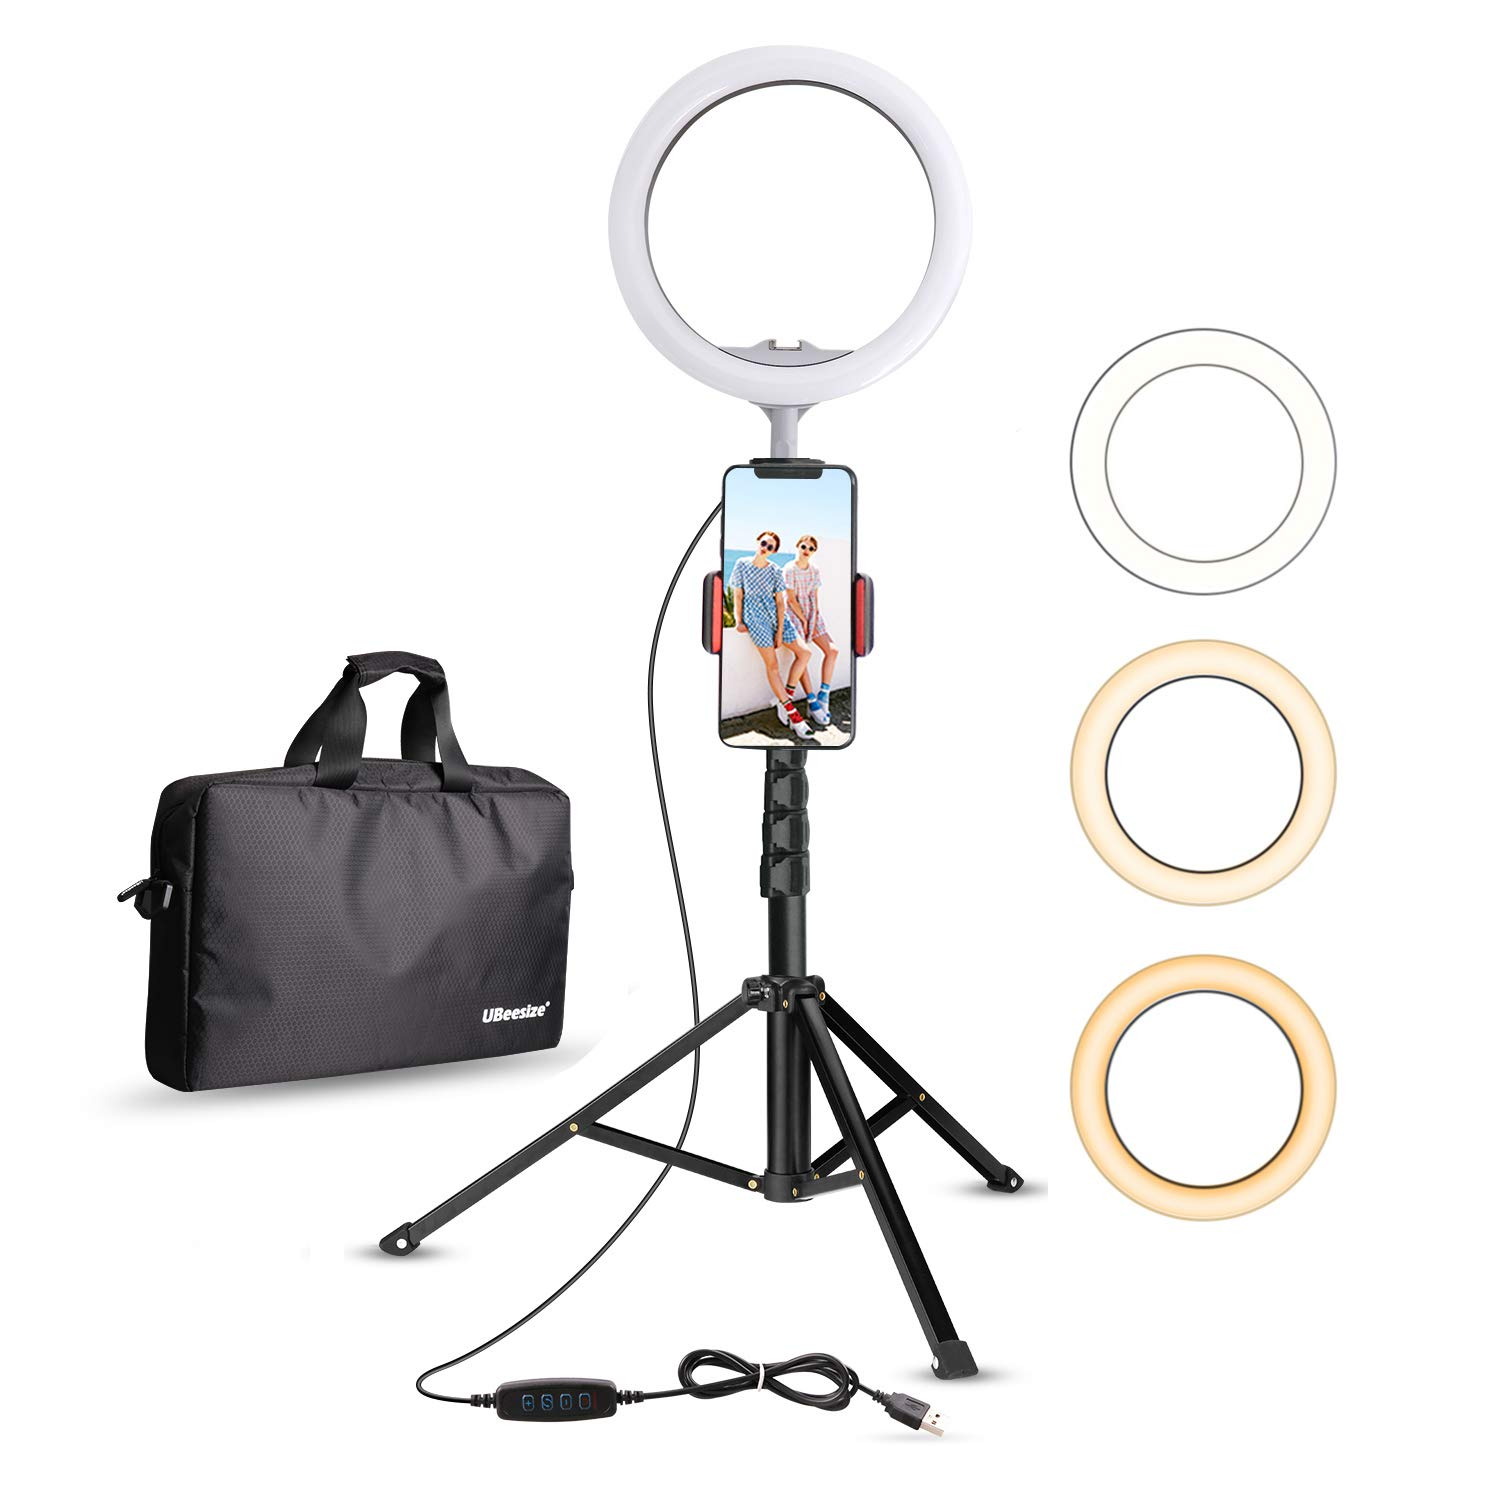 UBeesize 10.2'' Selfie Ring Light with Tripod Stand & Cell Phone Holder for Live Stream/Makeup, Mini Led Camera Ringlight for YouTube Video/Photography Compatible with iPhone Android by UBeesize